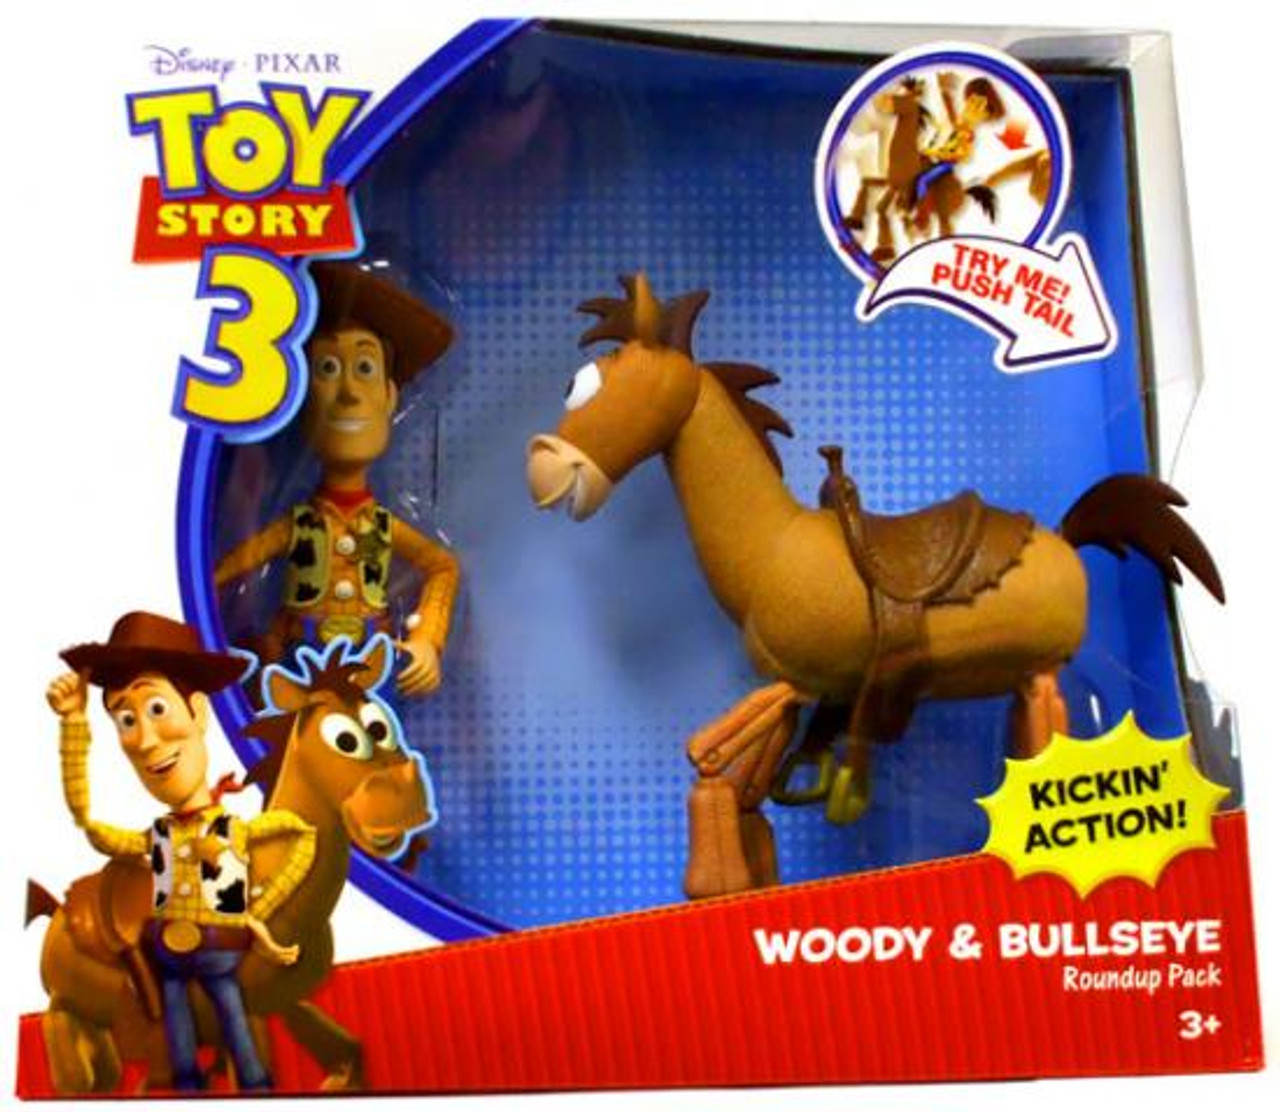 Toy Story 3 Woody & Bullseye Roundup Pack Action Figure 2-Pack